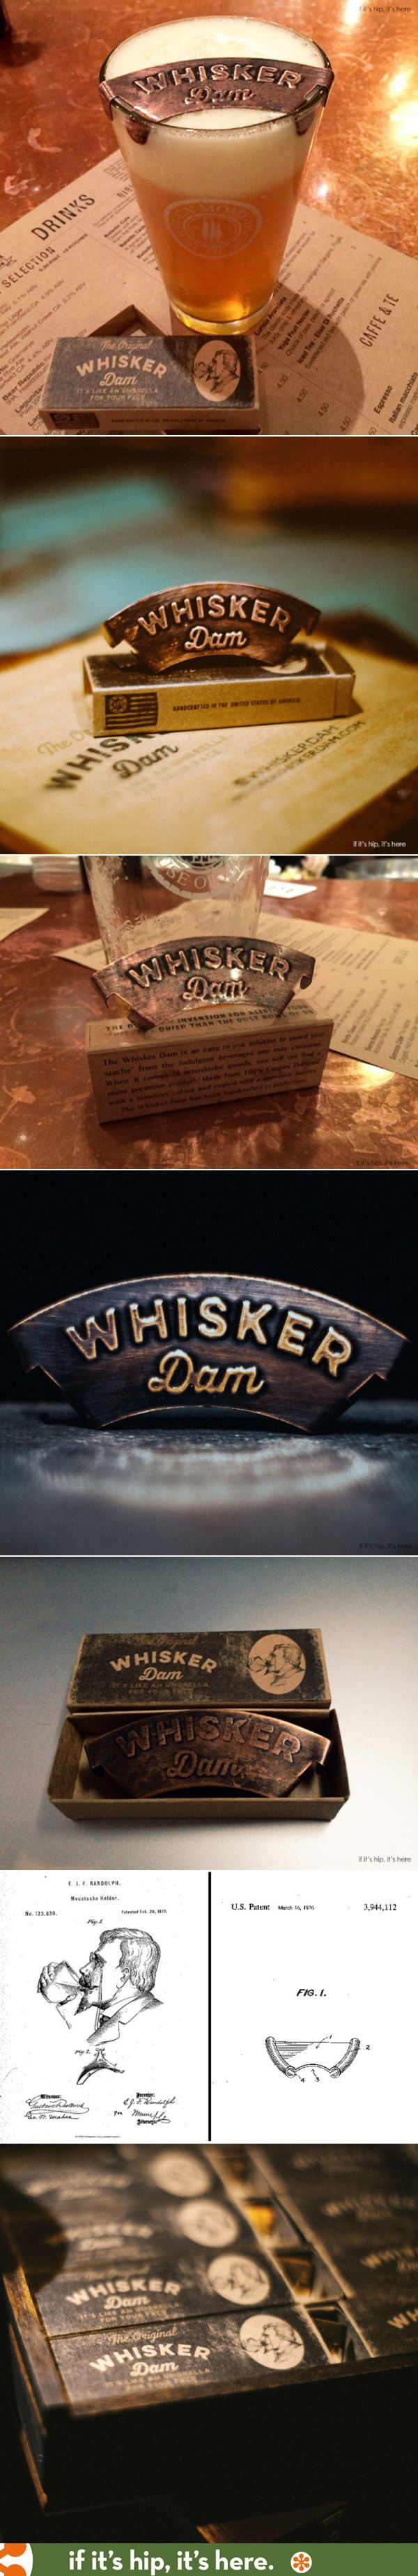 The Whisker Dam is a new product to protect a moustache from getting wet while drinking. The packaging design has a purposely distressed look and a vintage logo that was inspired by an original patent from 1872.